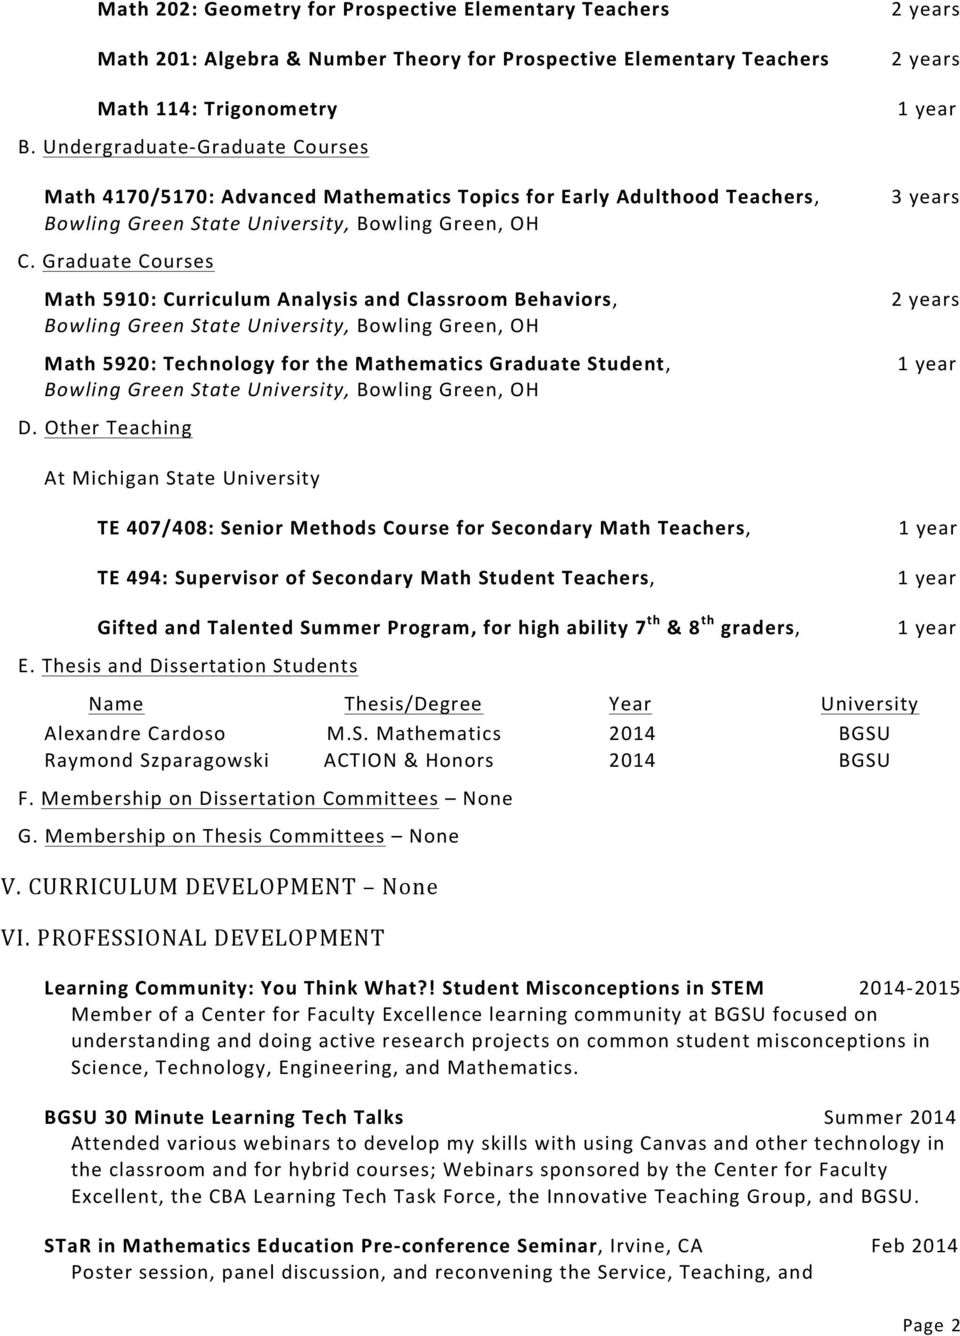 Graduate Courses Math 5910: Curriculum Analysis and Classroom Behaviors, Bowling Green State University, Bowling Green, OH Math 5920: Technology for the Mathematics Graduate Student, Bowling Green